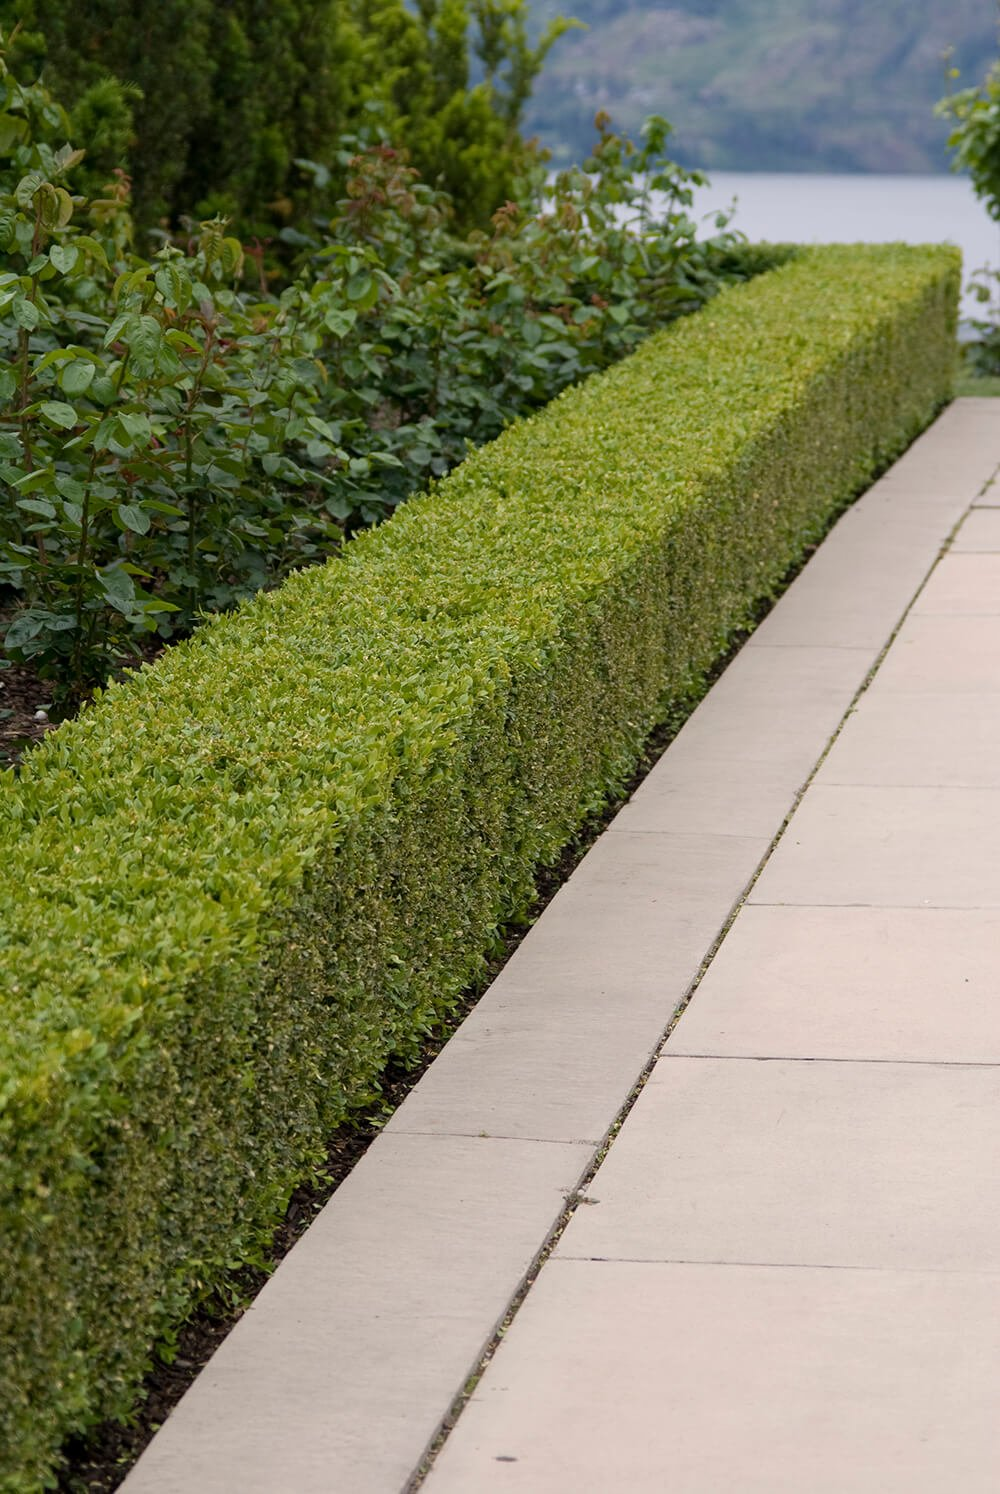 The straight lines of this path and bordering hedge create an ordered sense of calm and balance each other well.